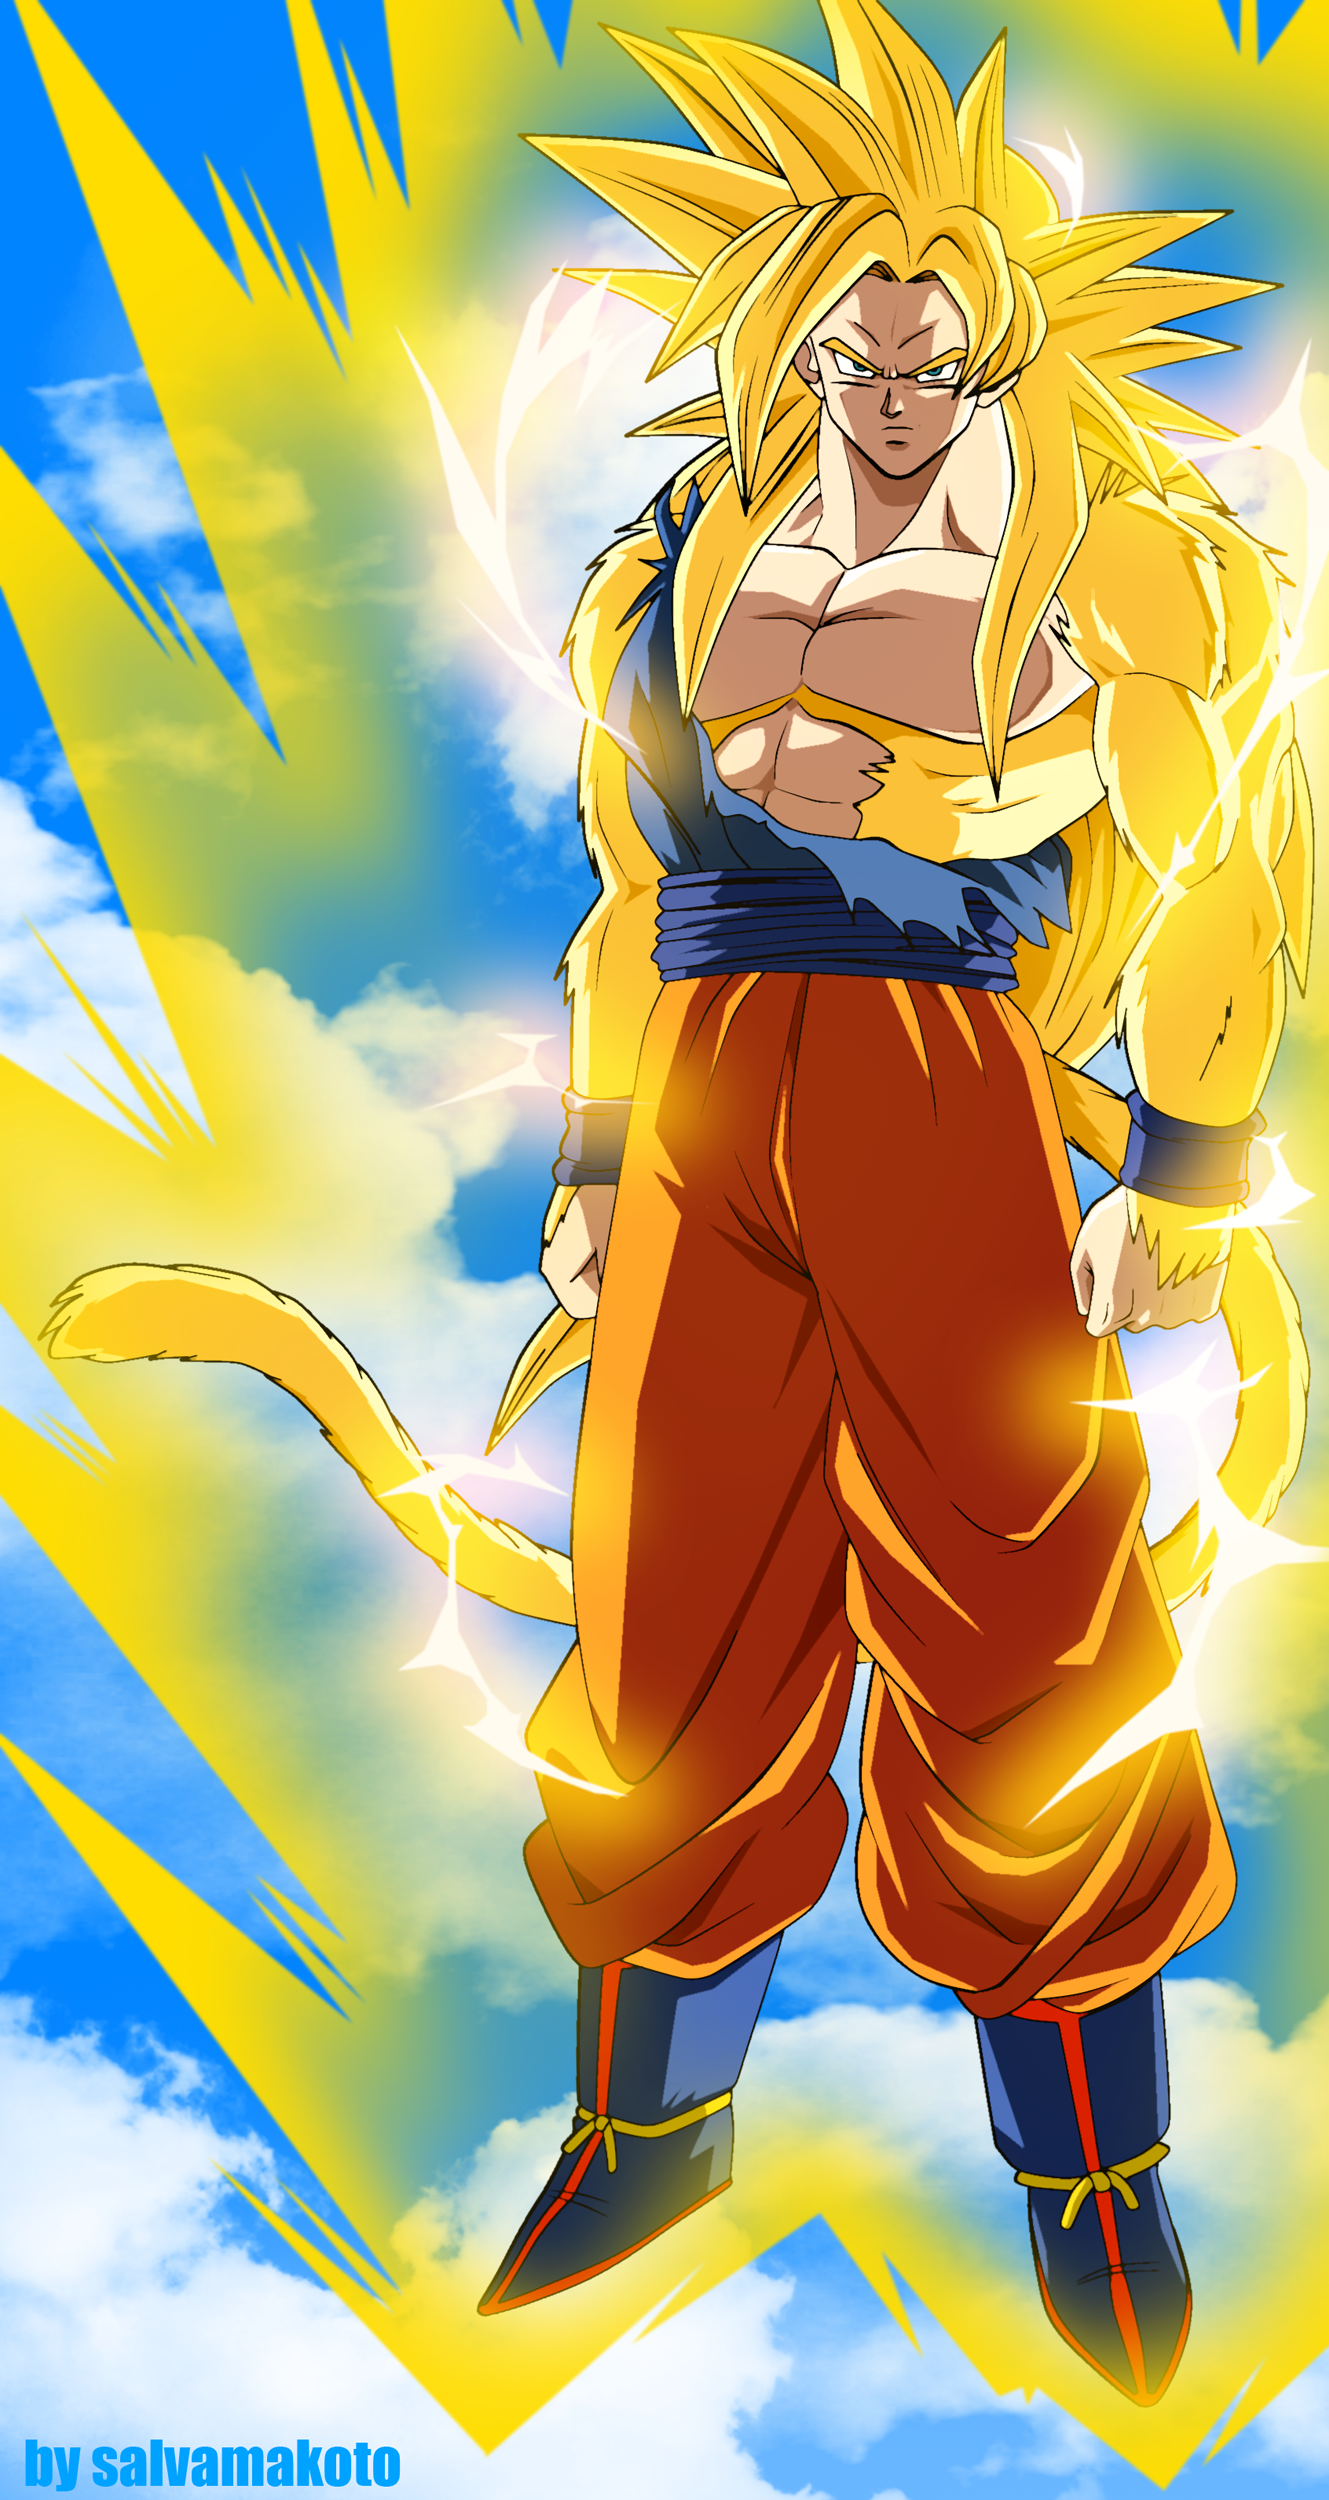 THIS is what Super Saiyan 4 should have looked like